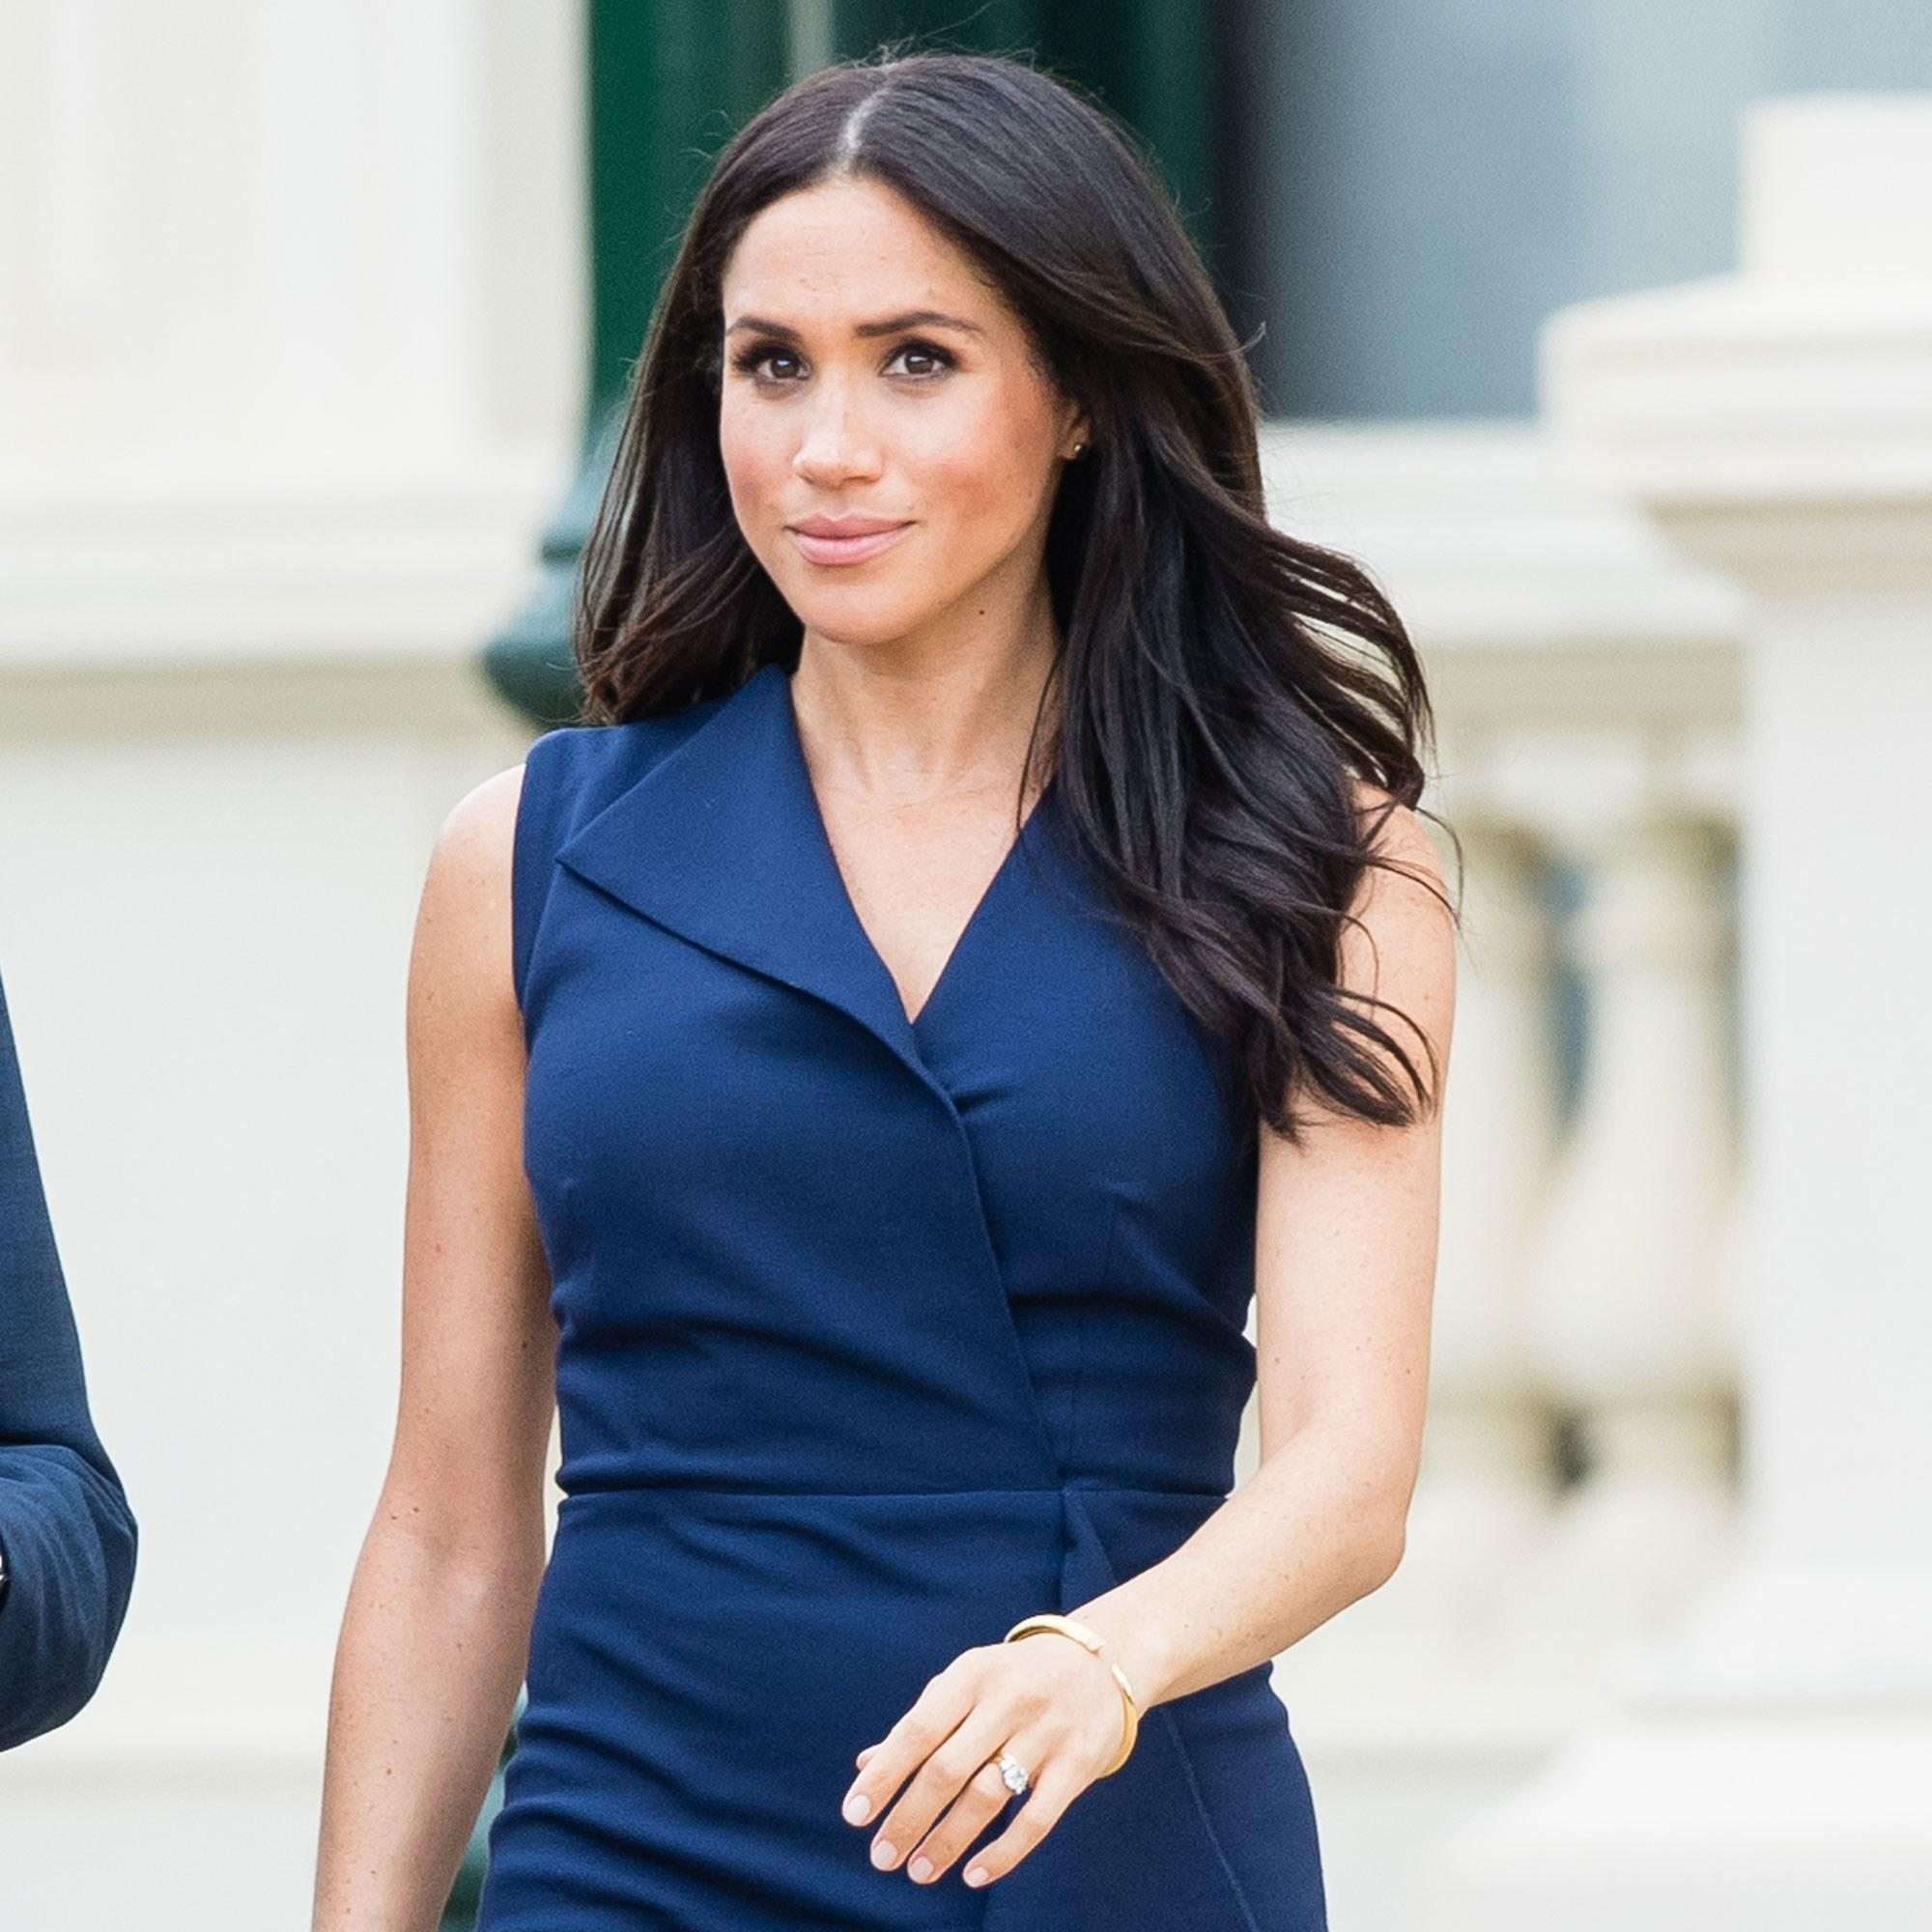 Meghan Markle Debuts A Beachy, Breezy New Updo In Australia